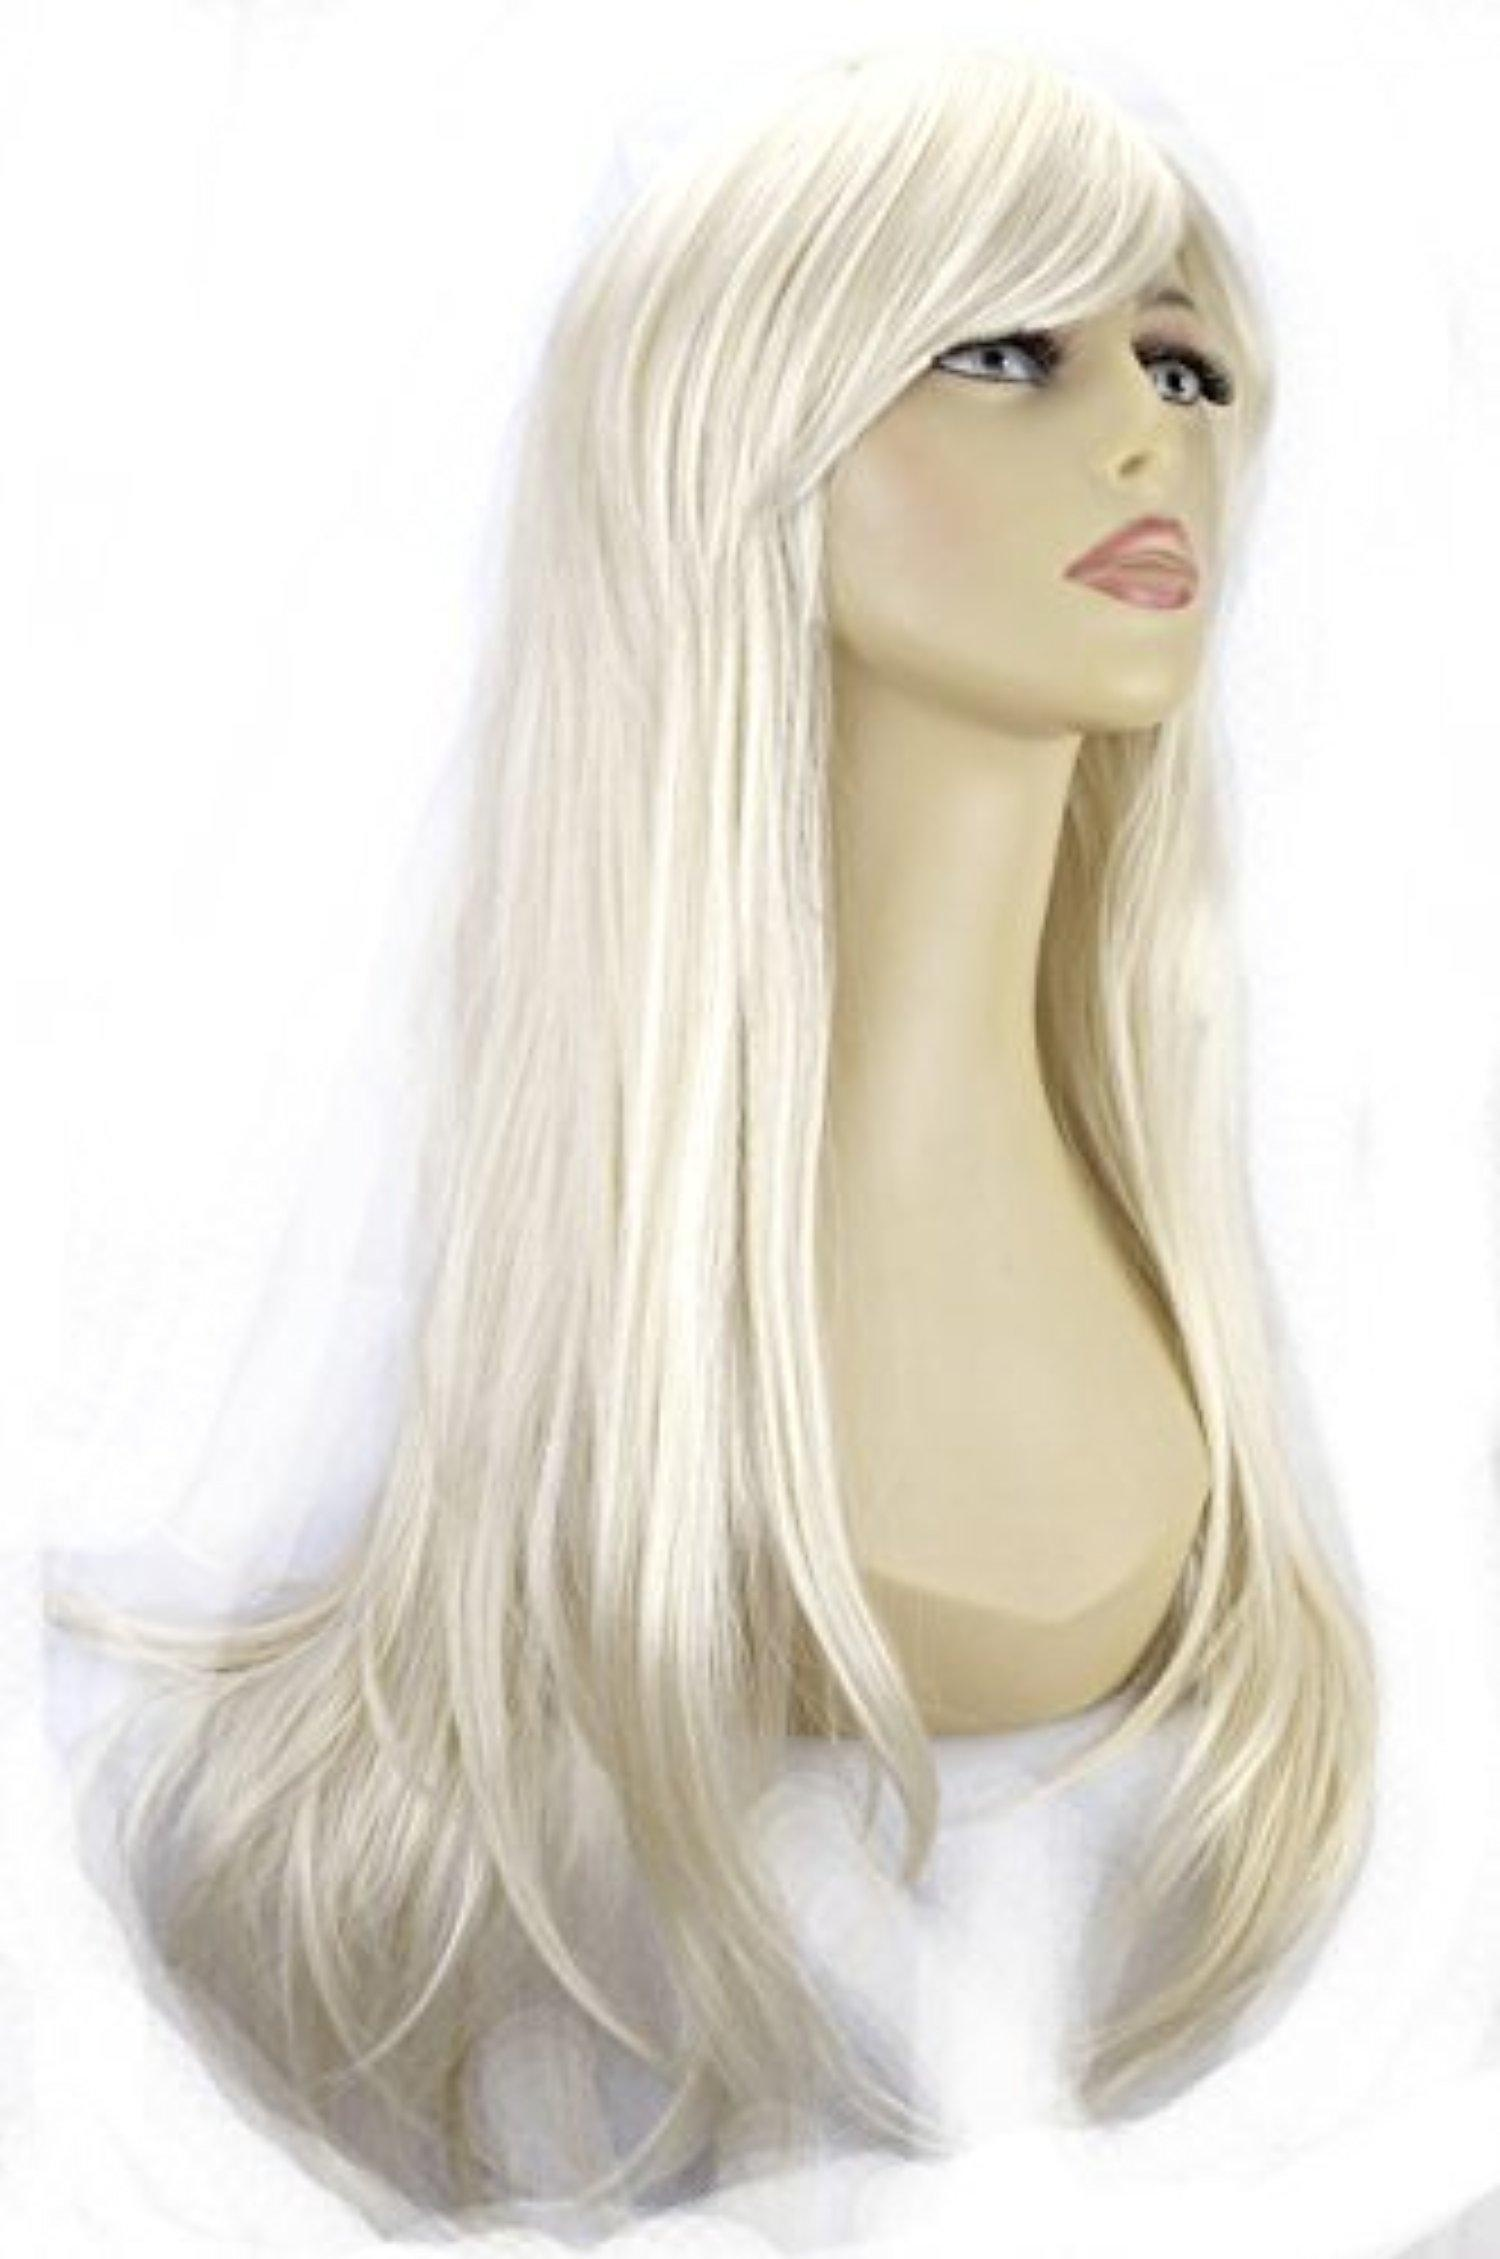 ELEGANT HAIR 20 Ladies Beautiful Full WIG Long Hair Piece FLICK Style Platinum Blonde #16/60 275g by Elegant Hair